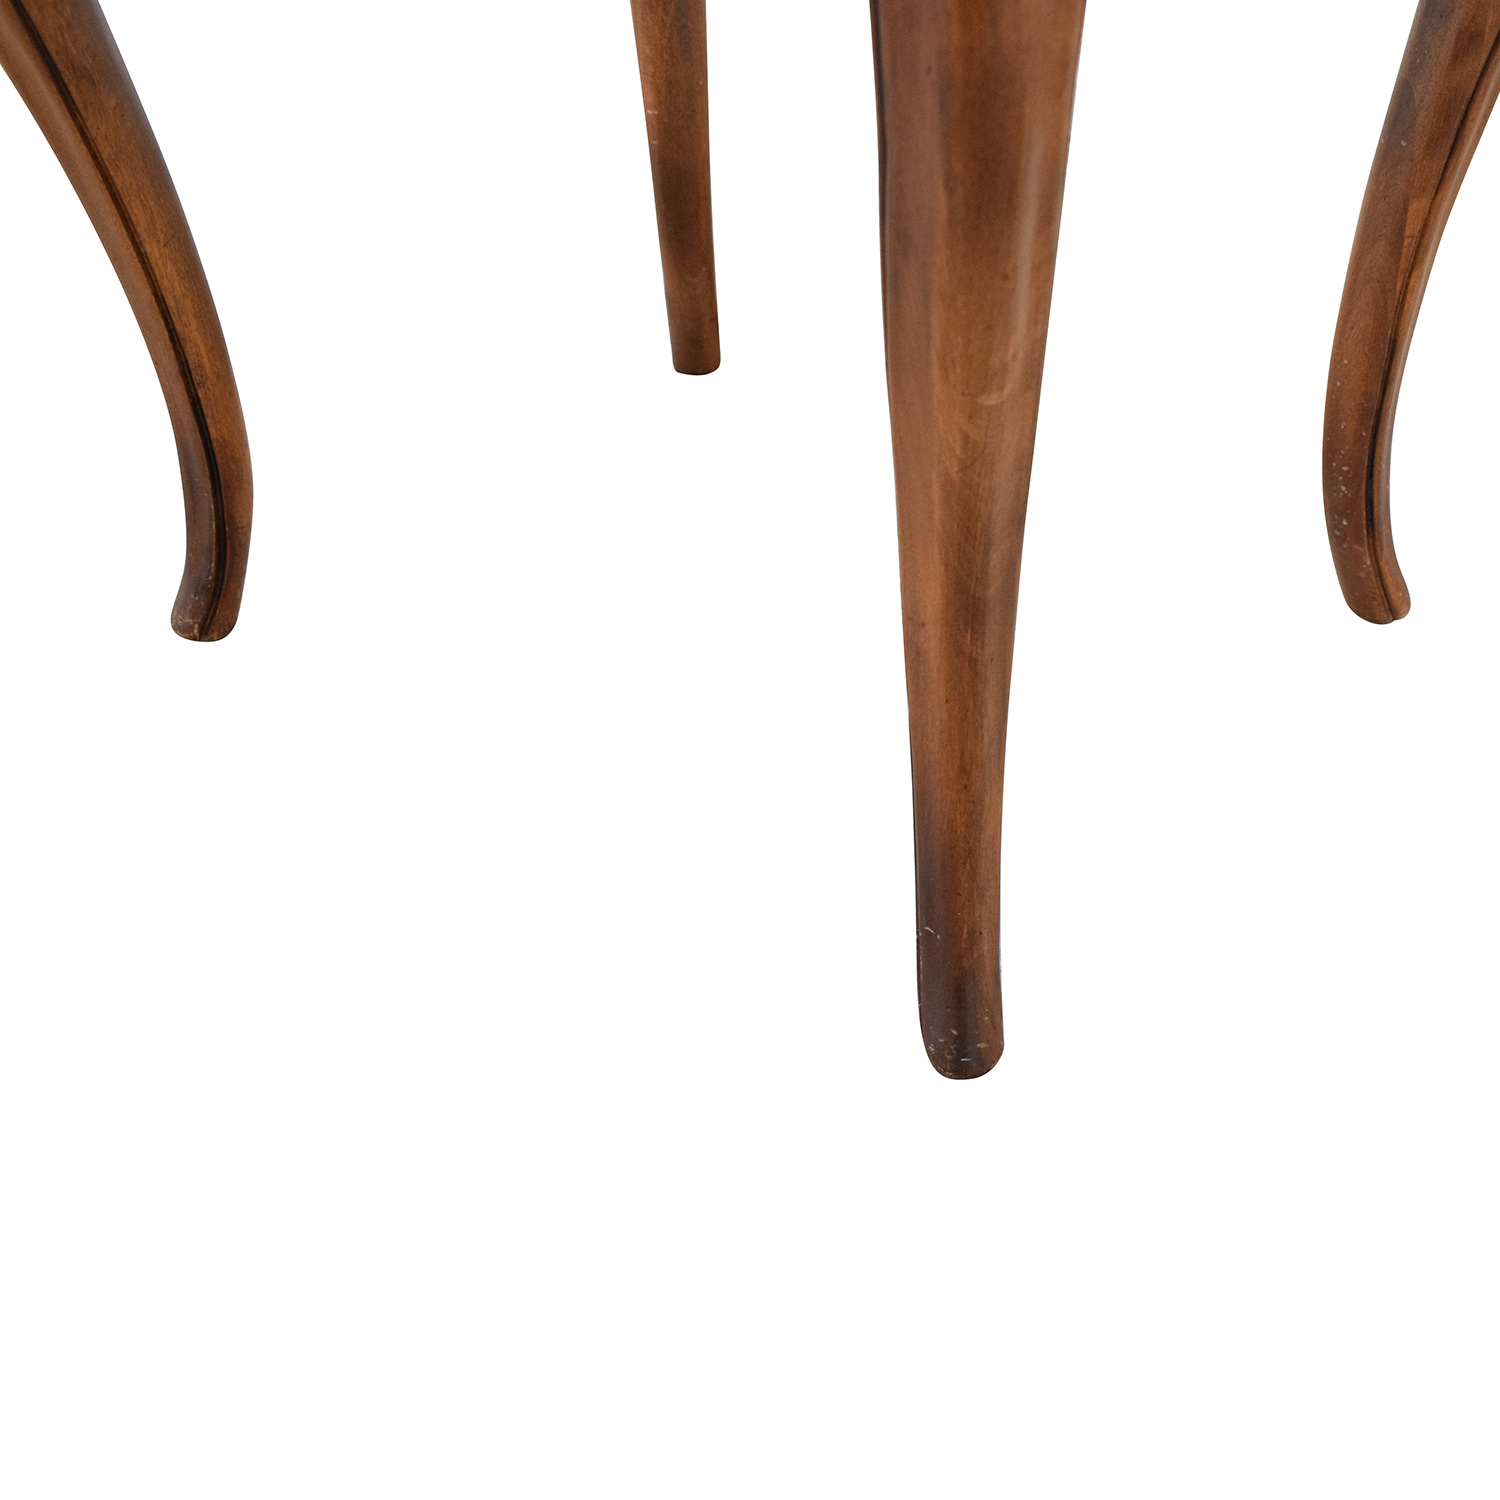 Ethan Allen Oval End Table / End Tables